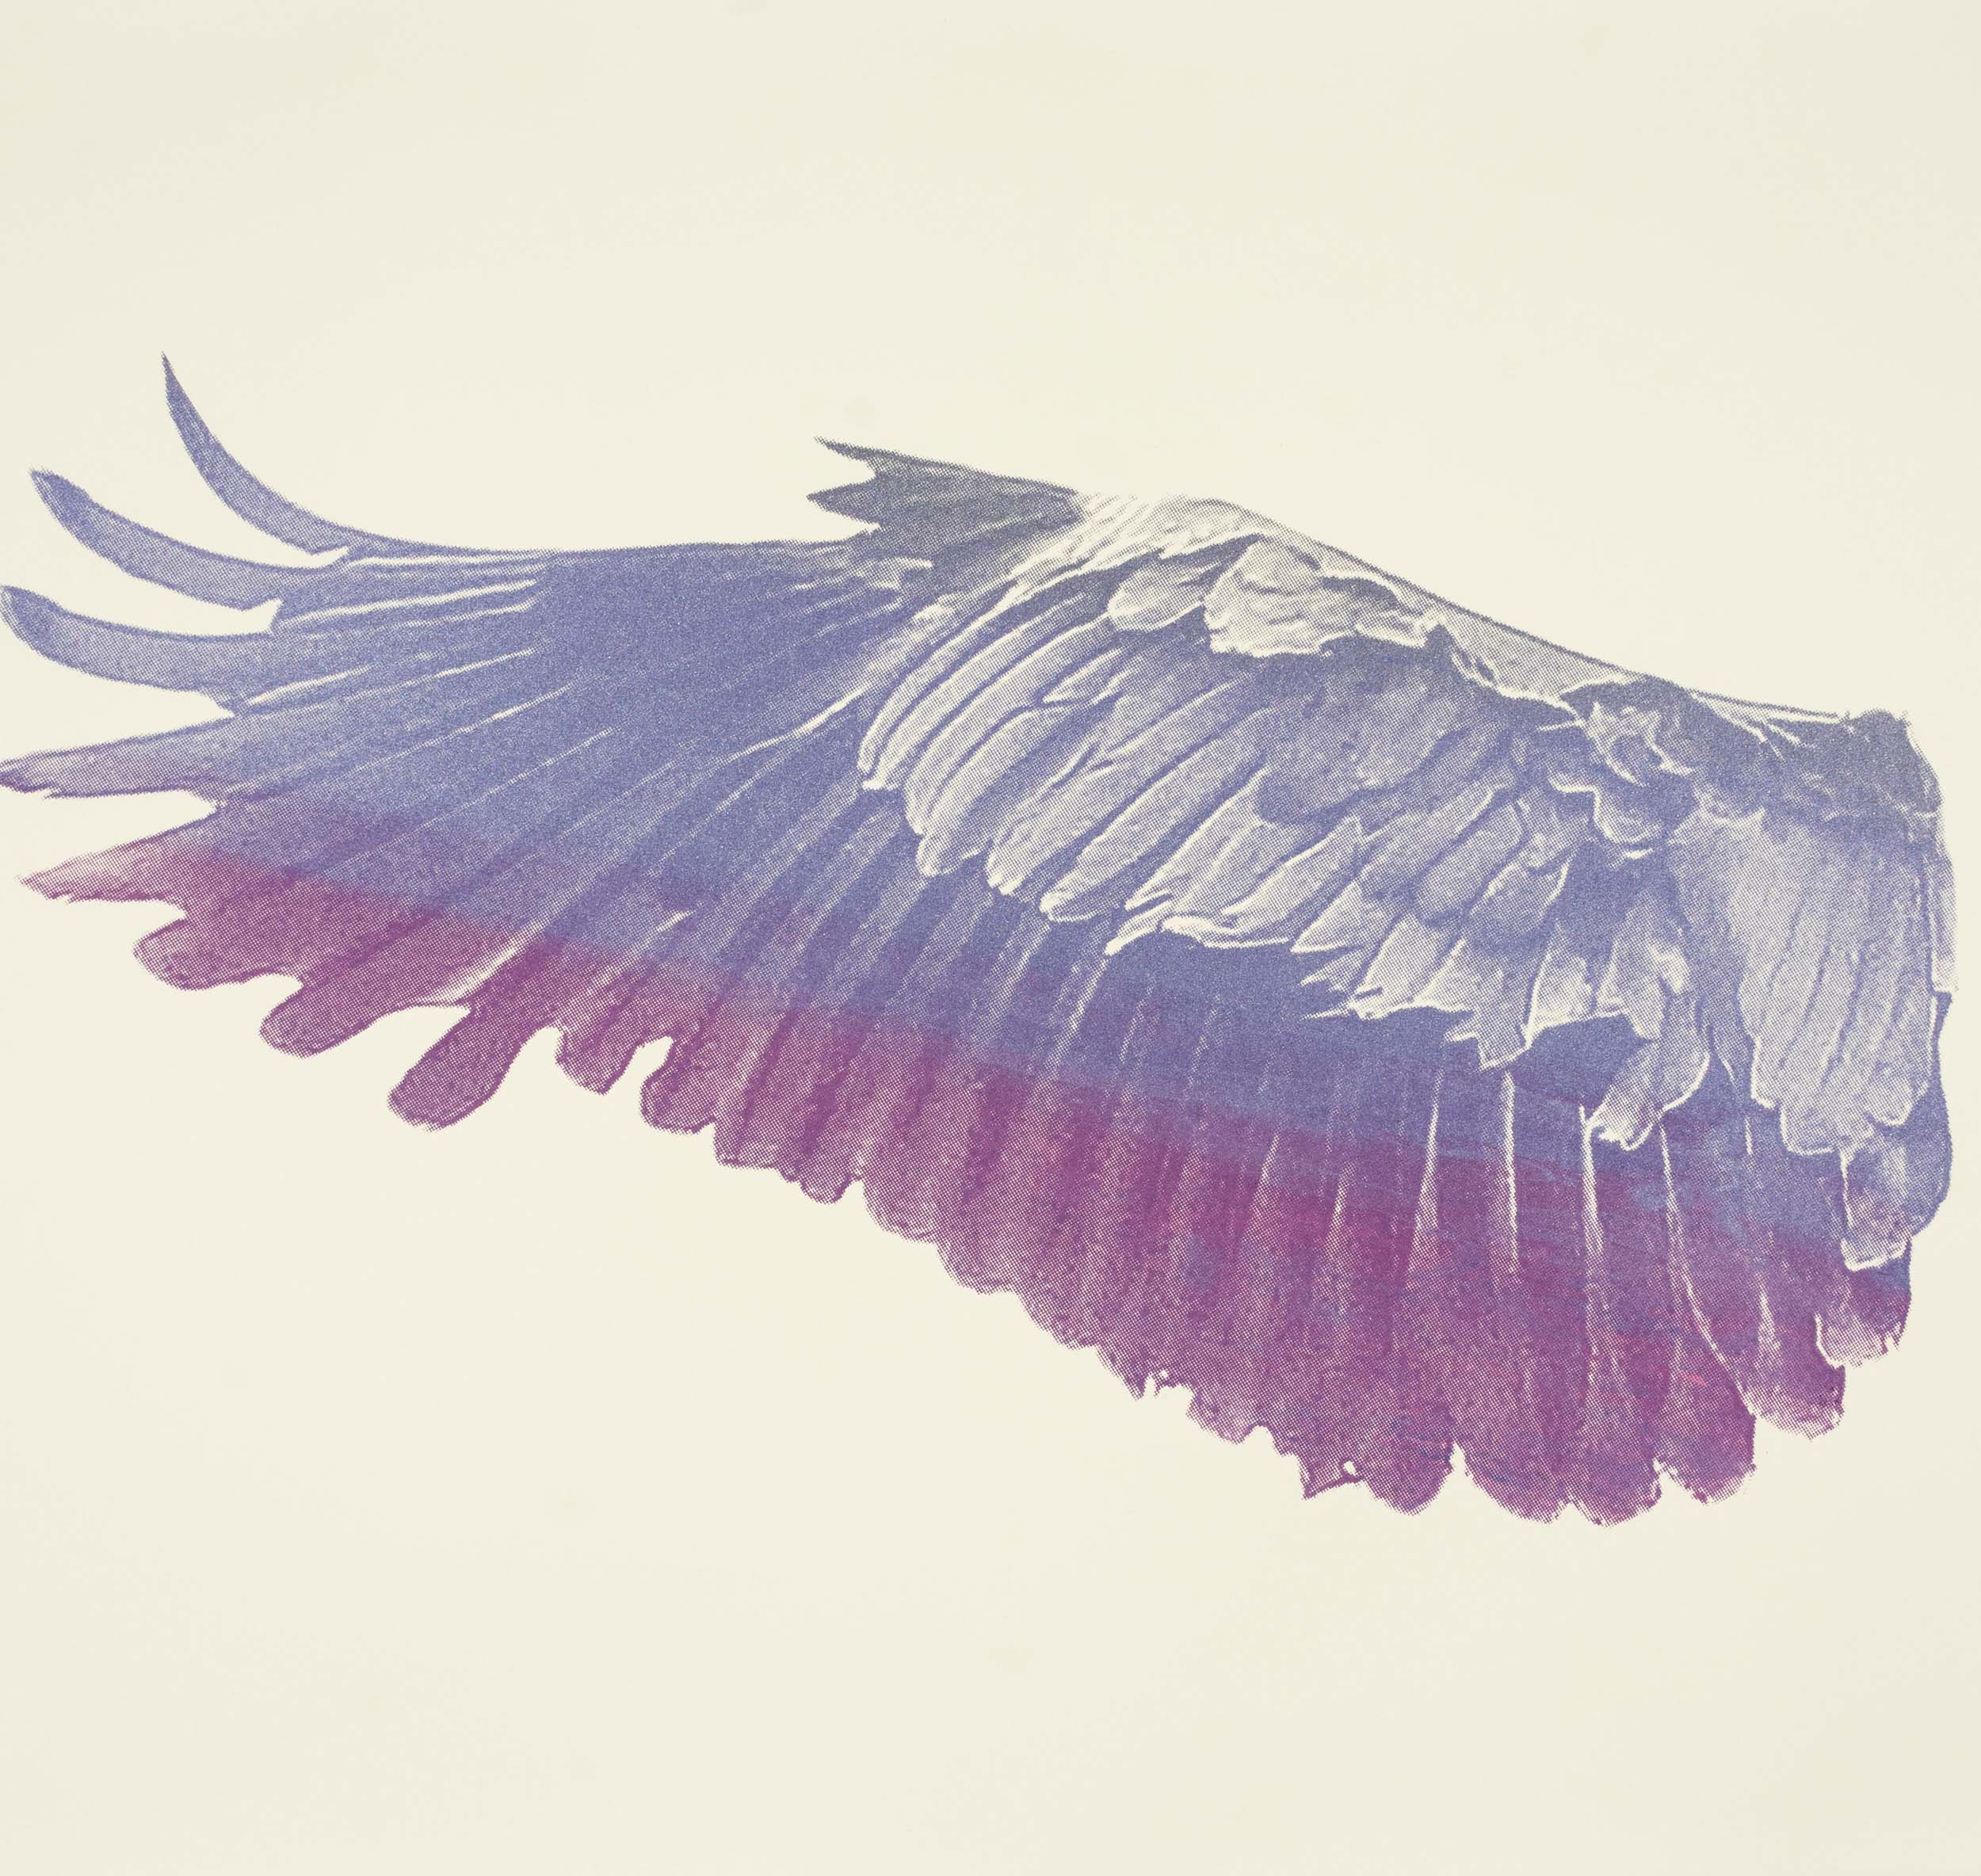 Silkscreen of a single heron's wing in purple and pink shades.